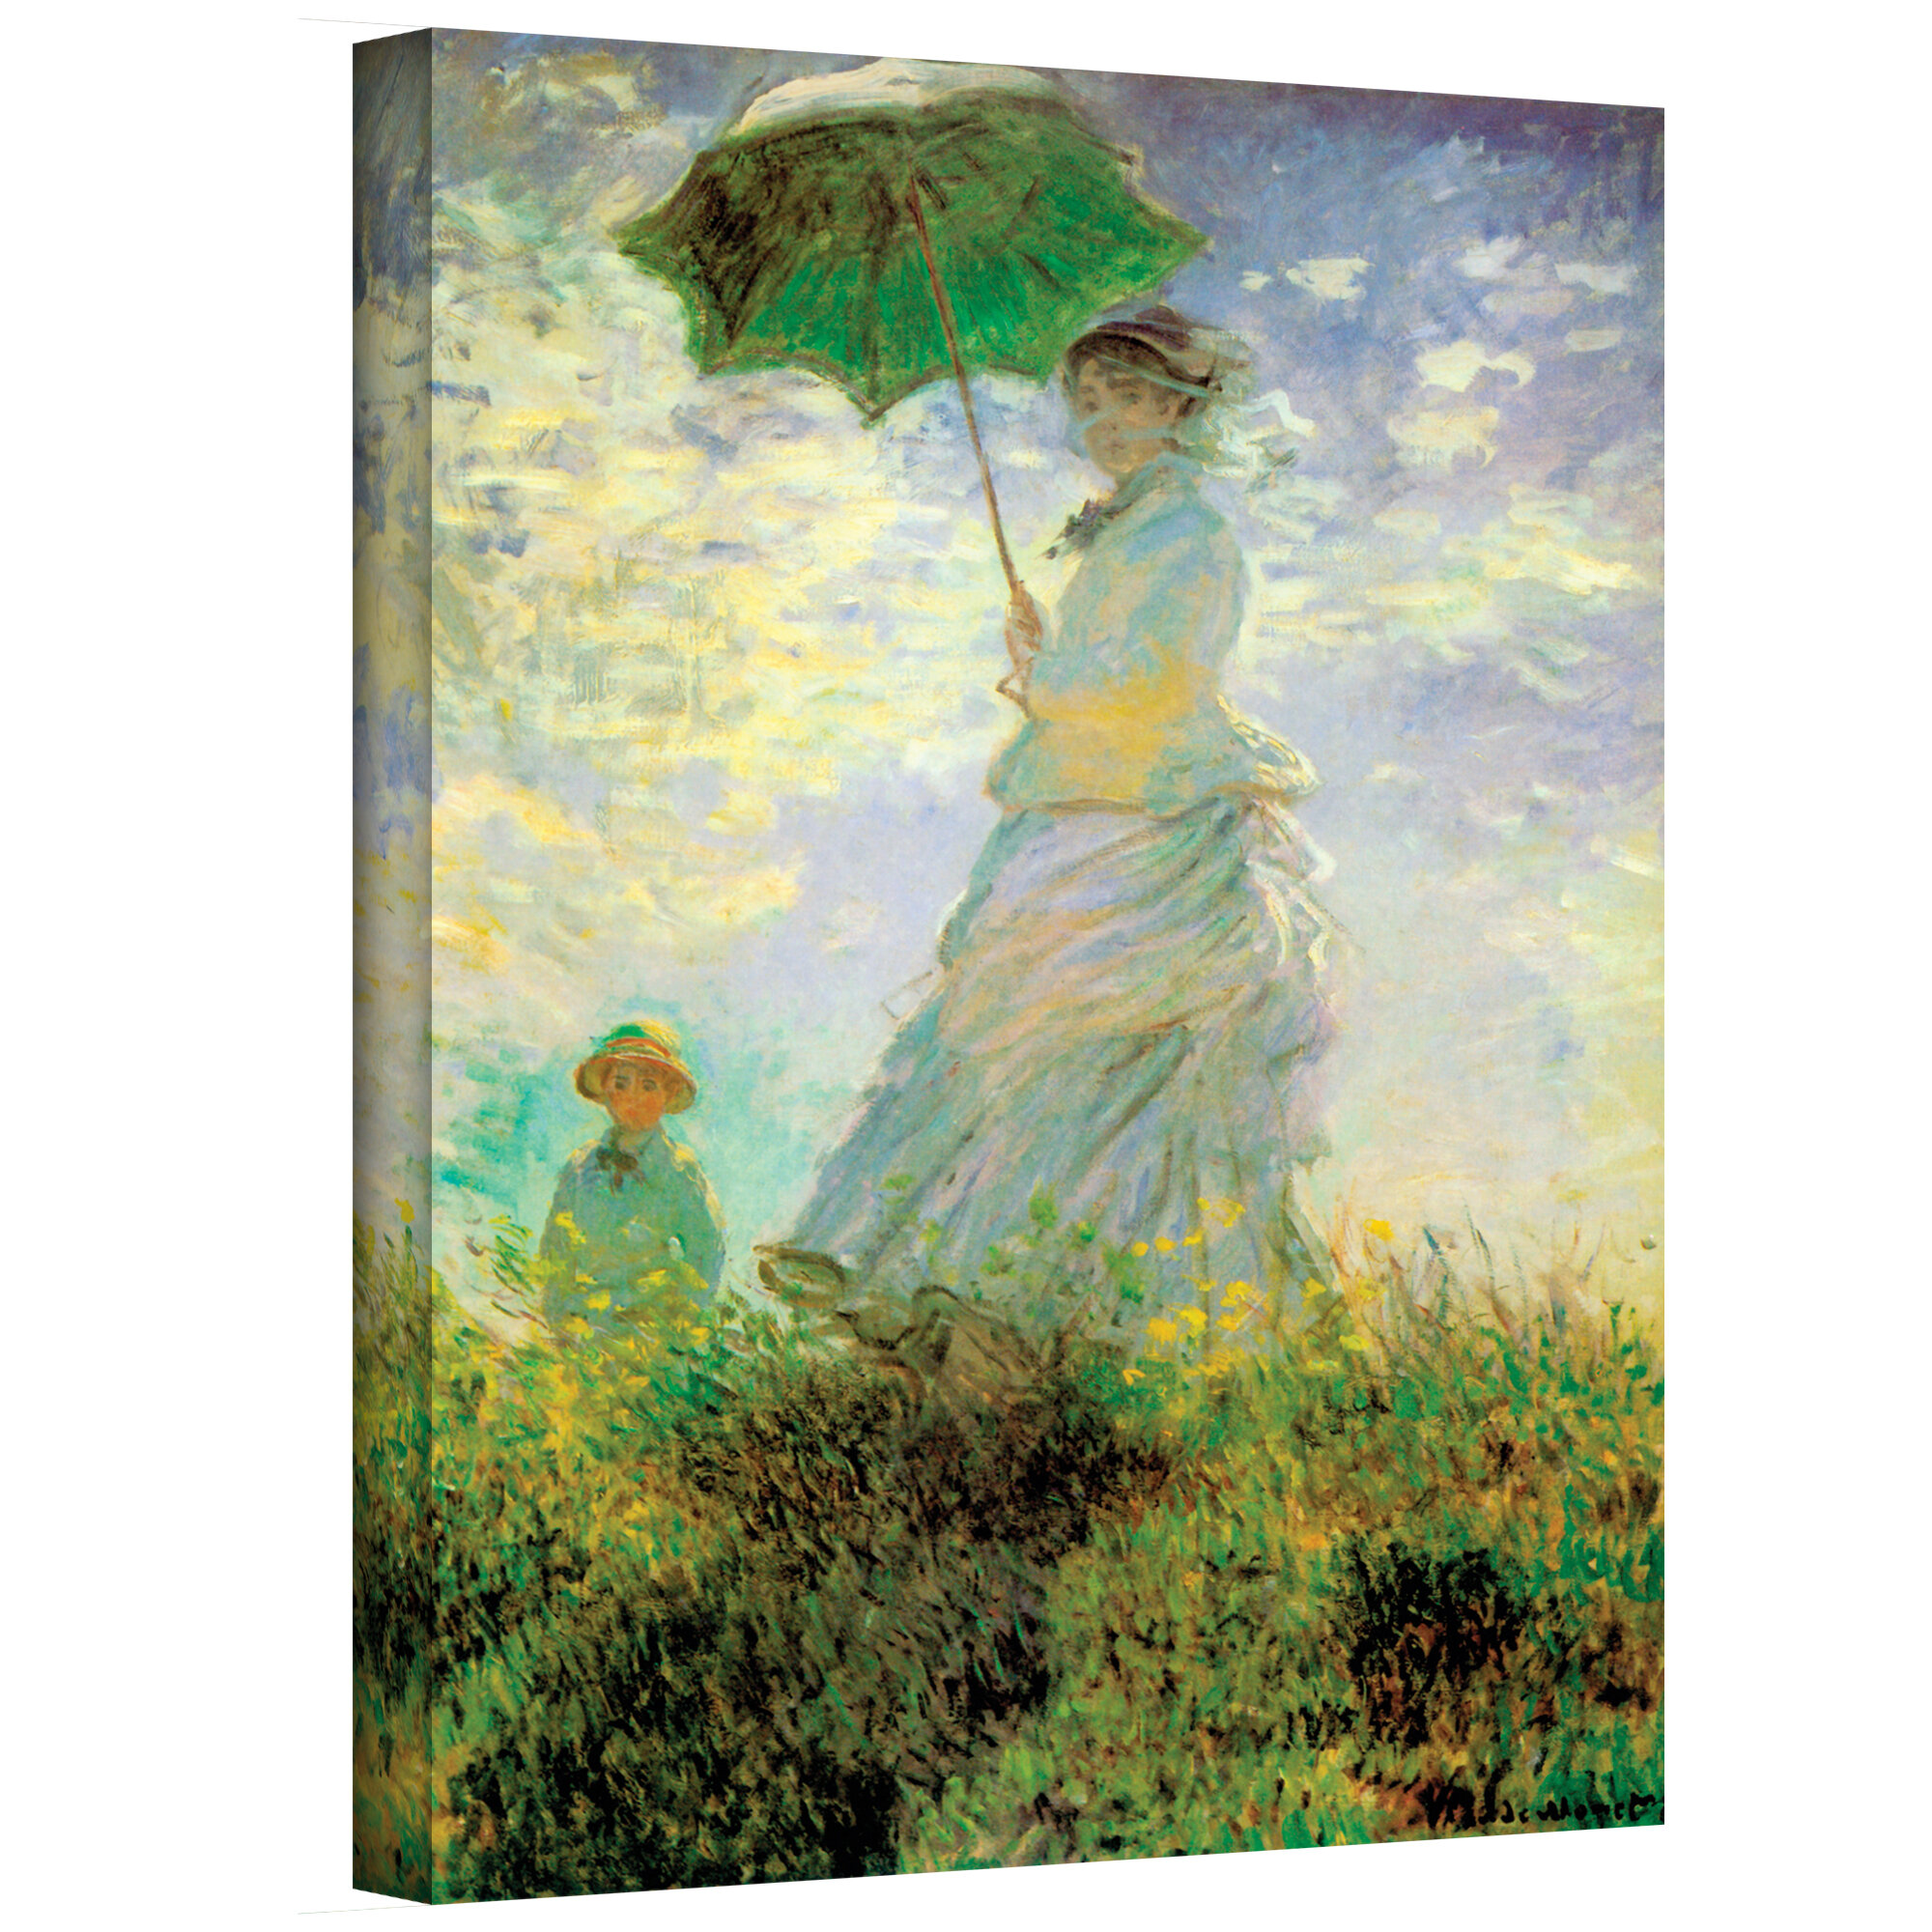 Lady With Umbrella In Field By Claude Monet Painting Print On Canvas